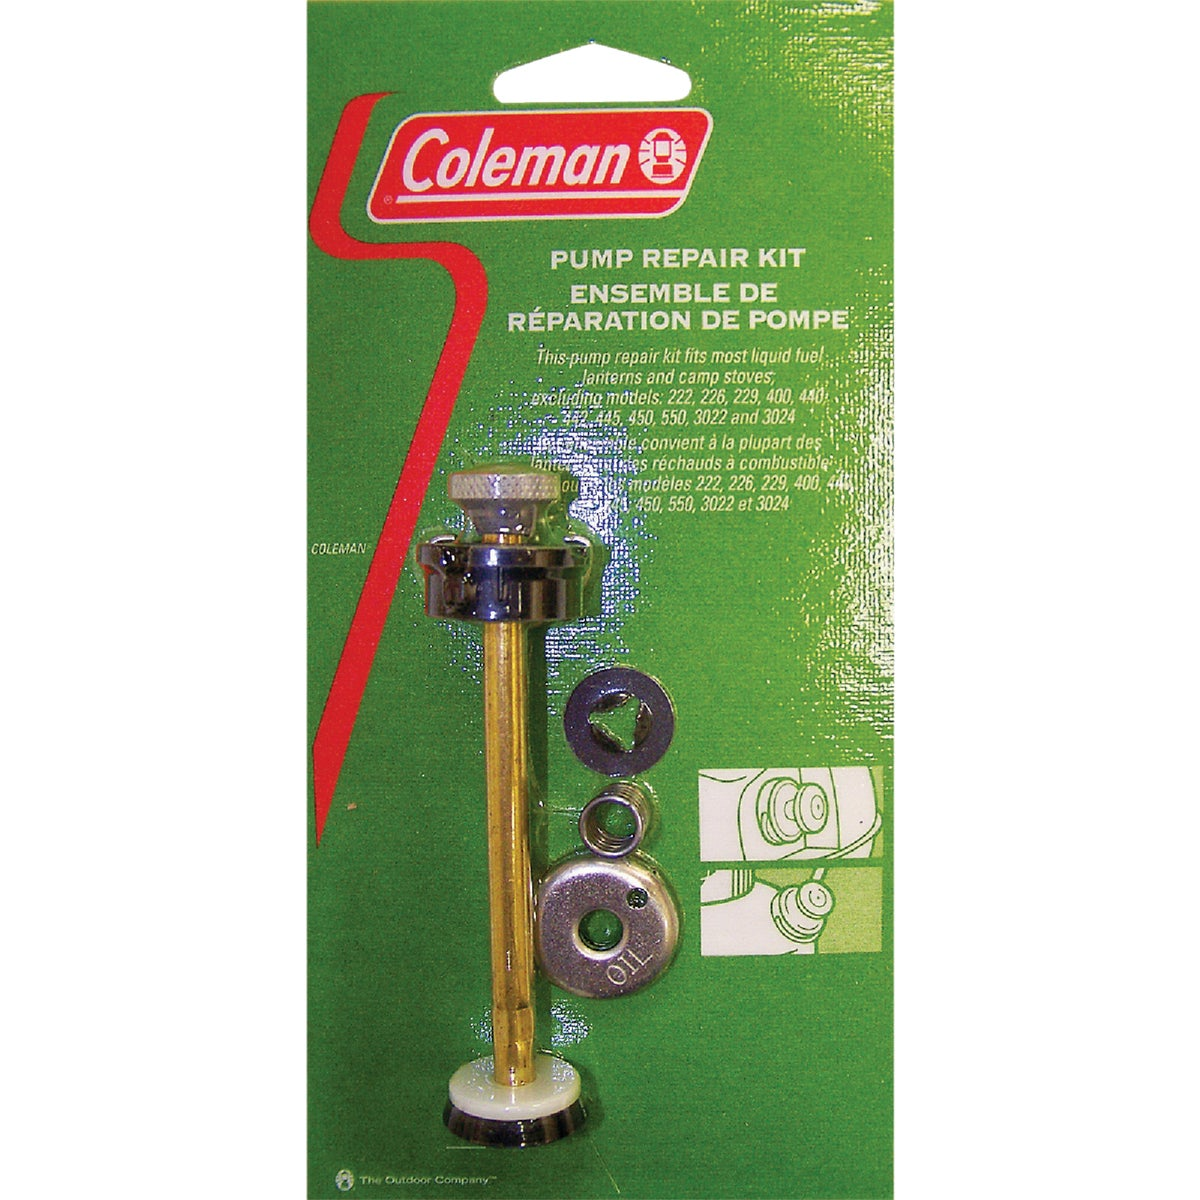 LANTERN PUMP KIT - 3000000455 by Coleman